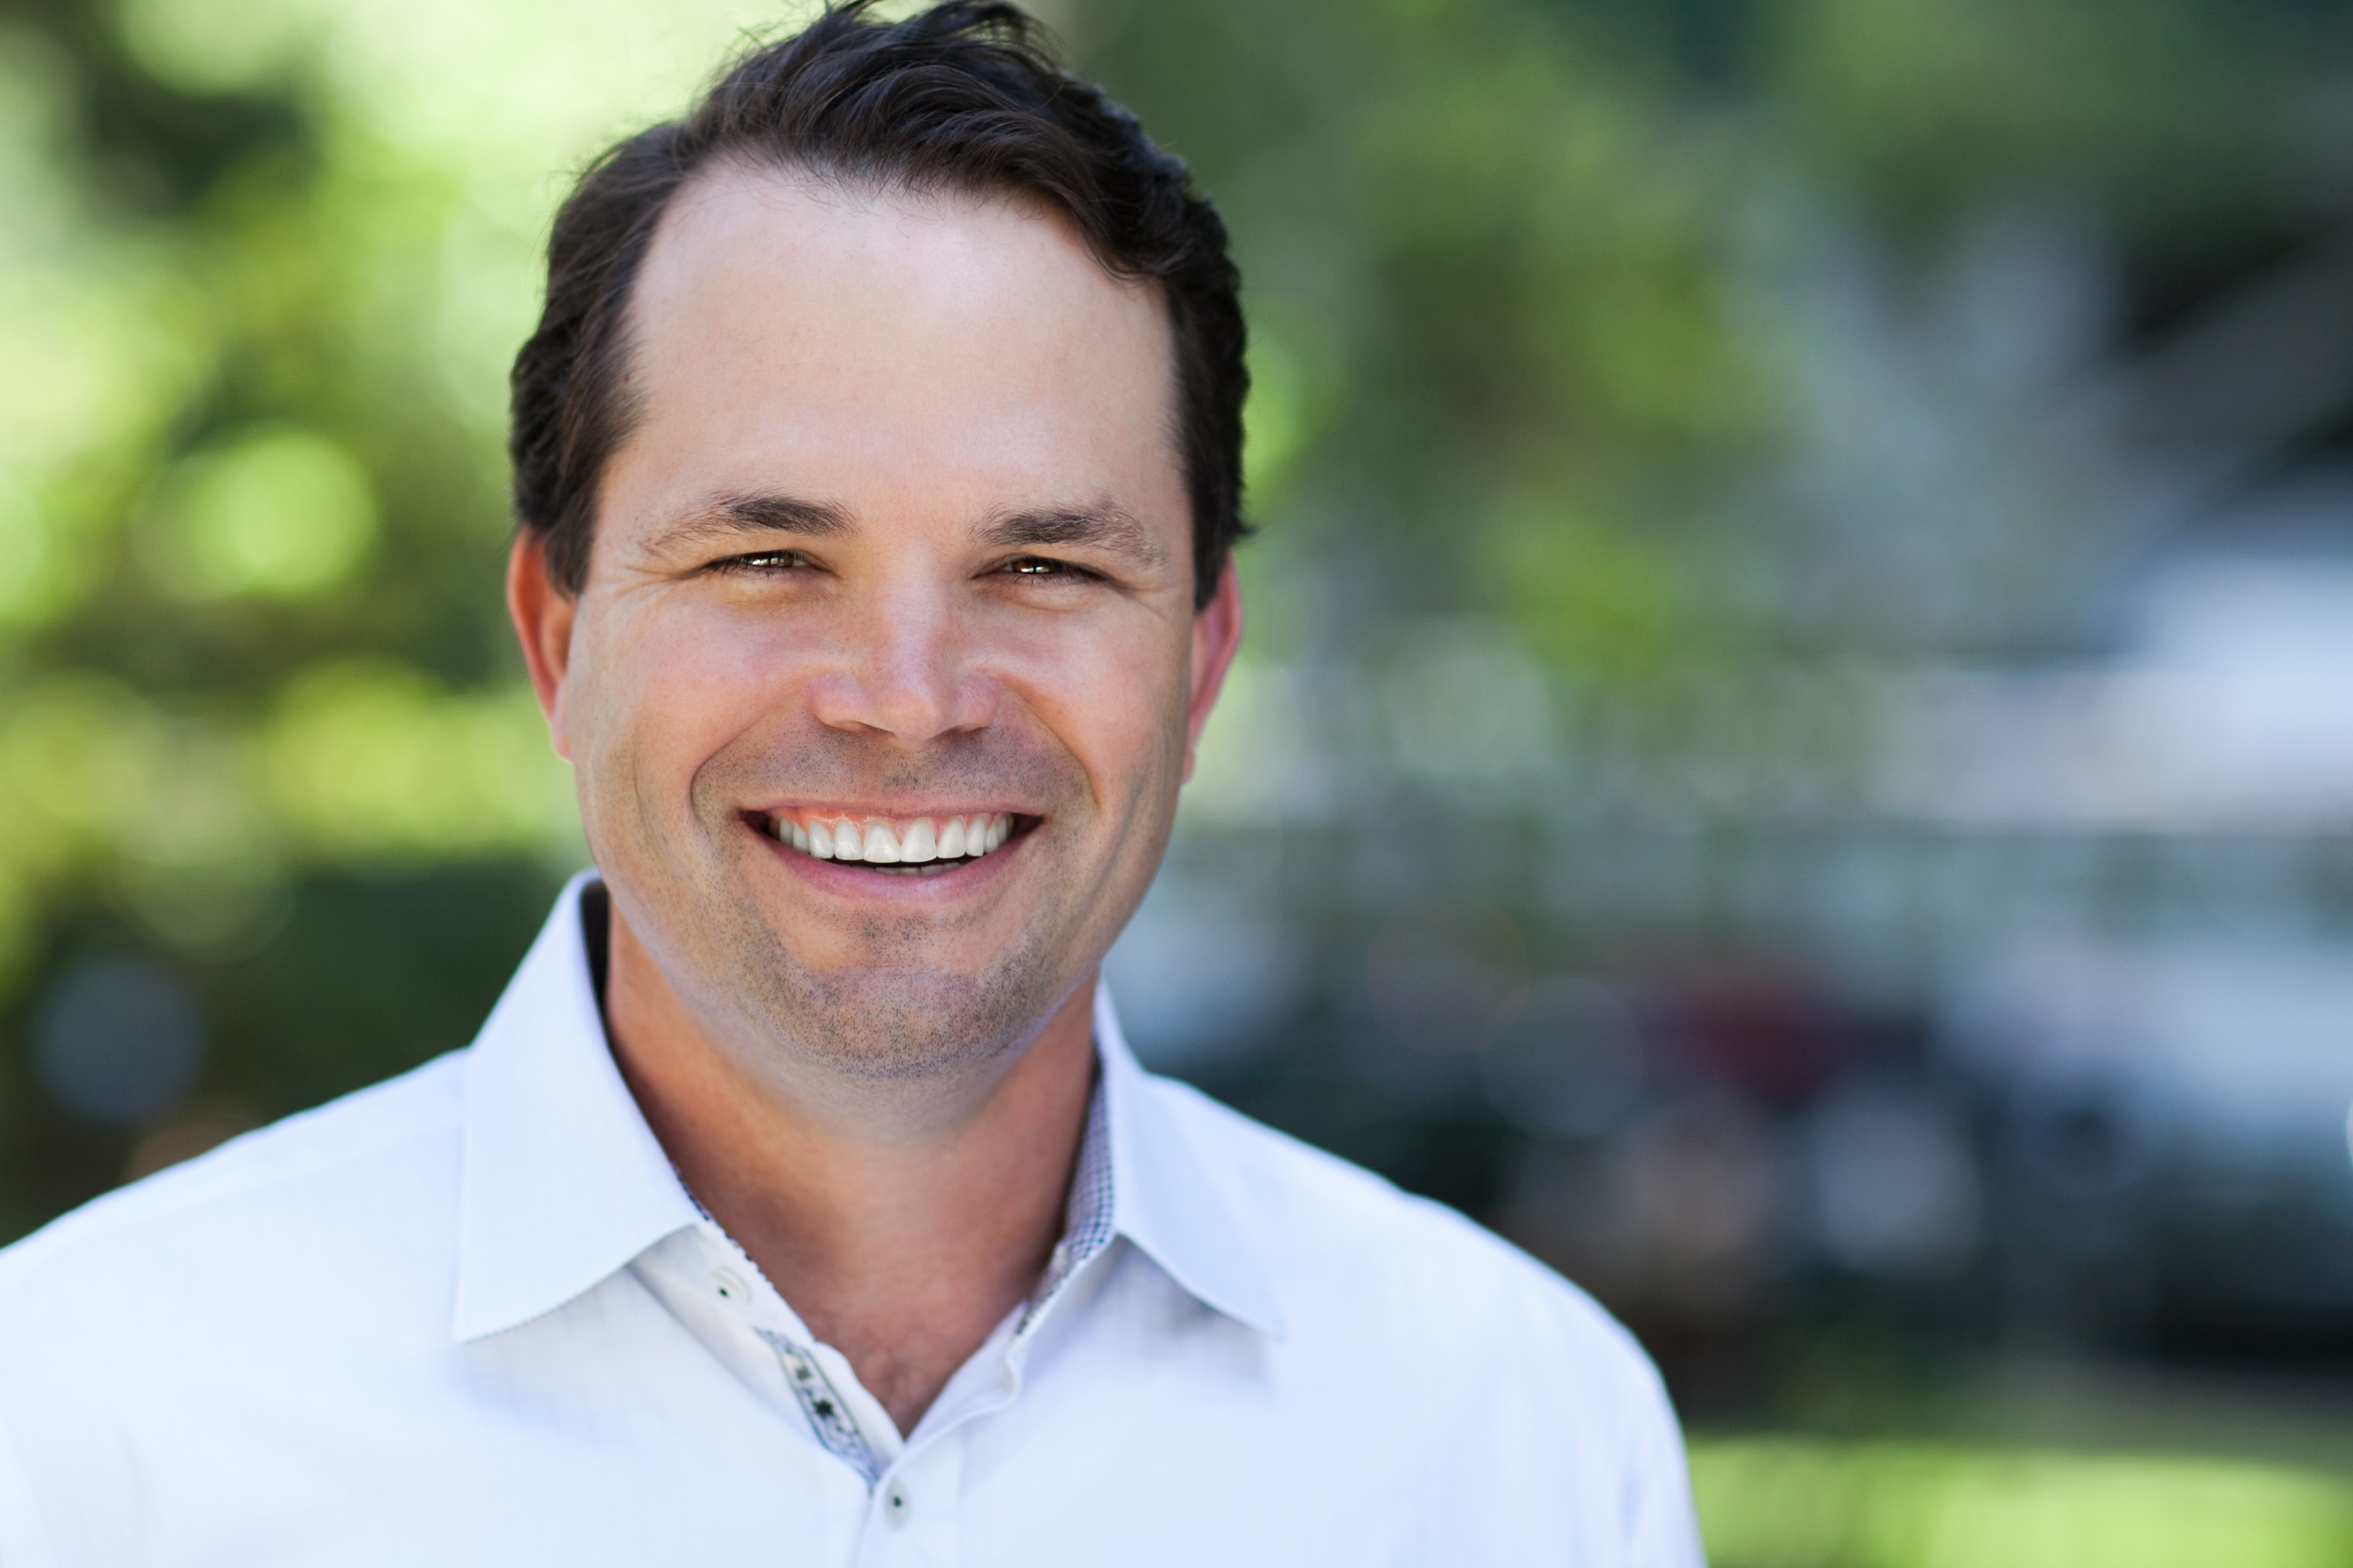 Dialpad is CEO and co-founder Craig Walker's third startup focused on cloud-served phone and conferencing services.